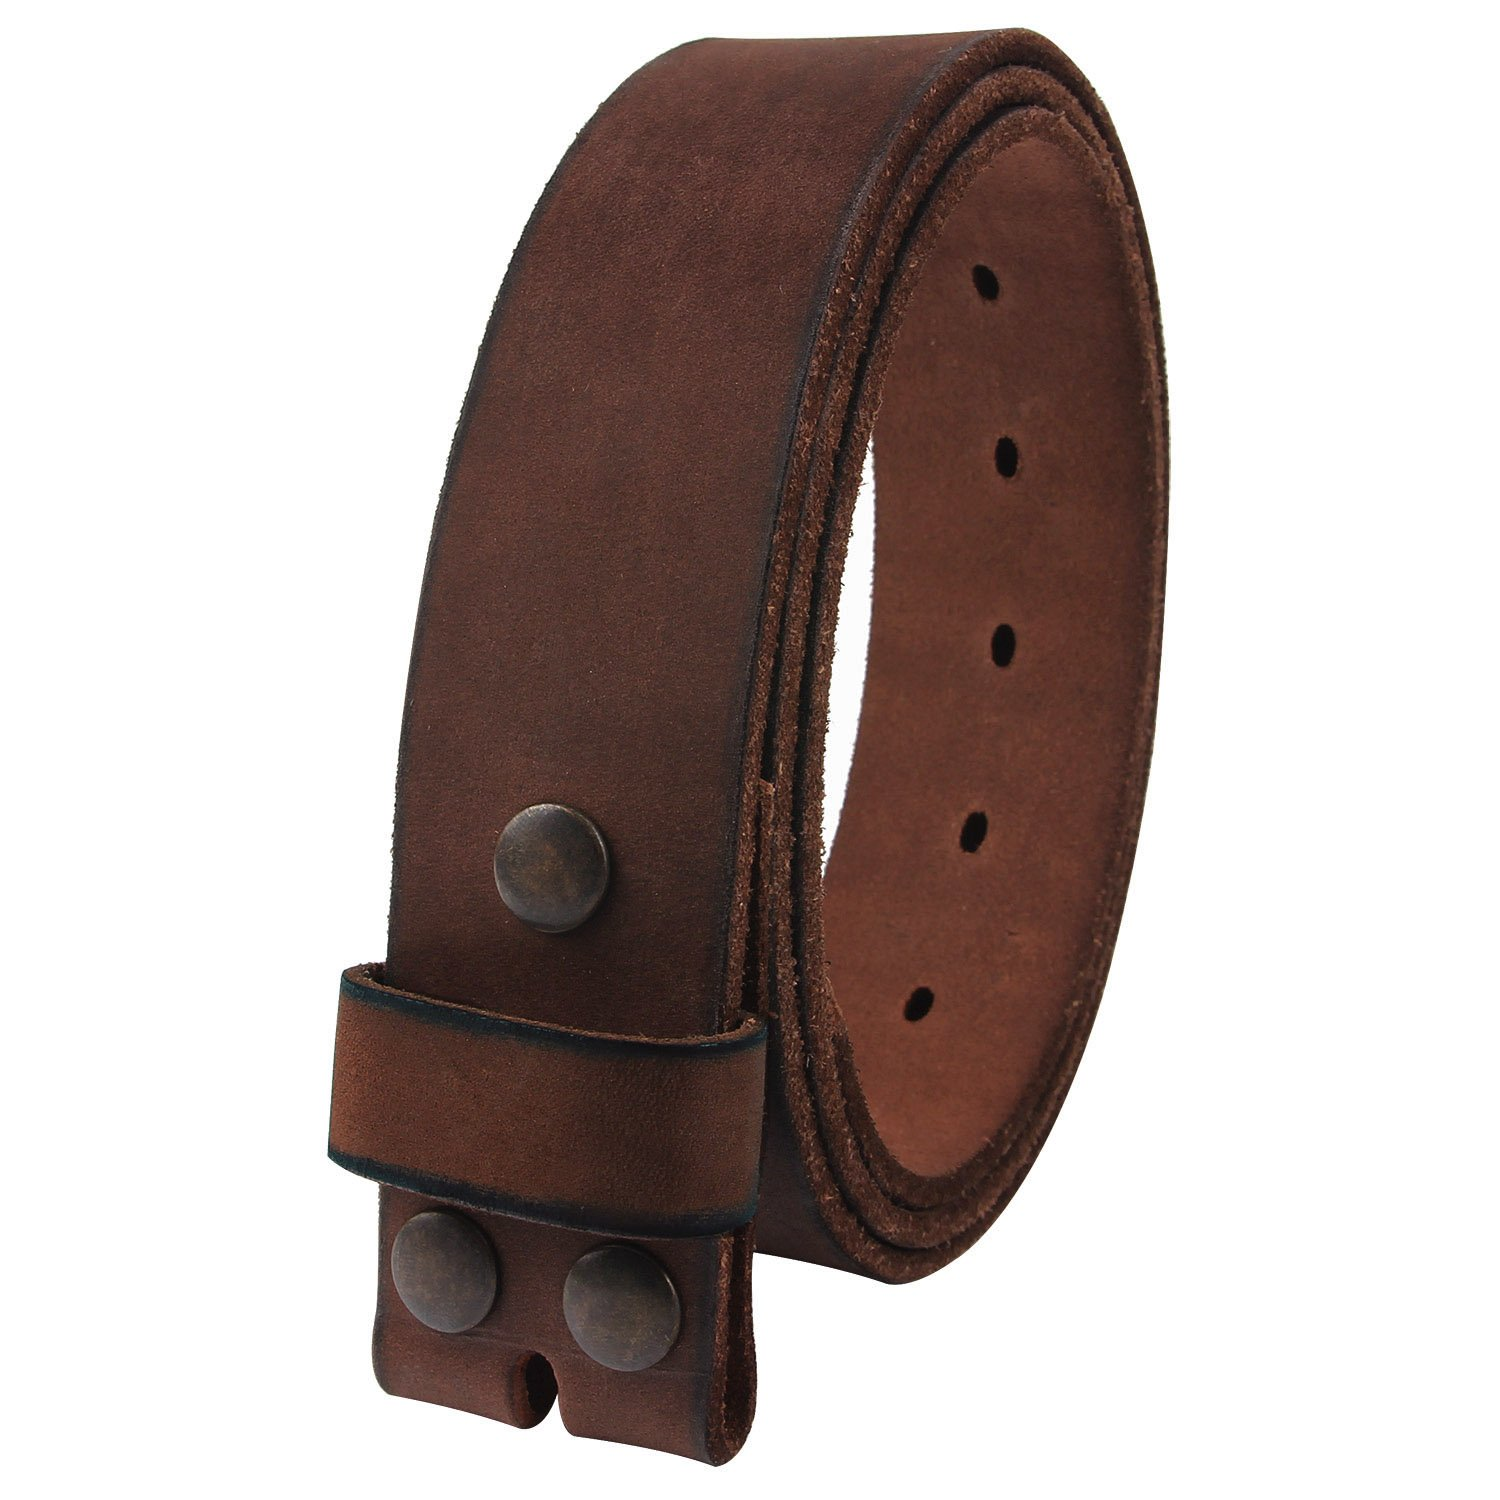 NPET Mens Leather Belt Full Grain Vintage Distressed Style Snap on Strap 1 1/2'' Wide Coffee 36''-38''